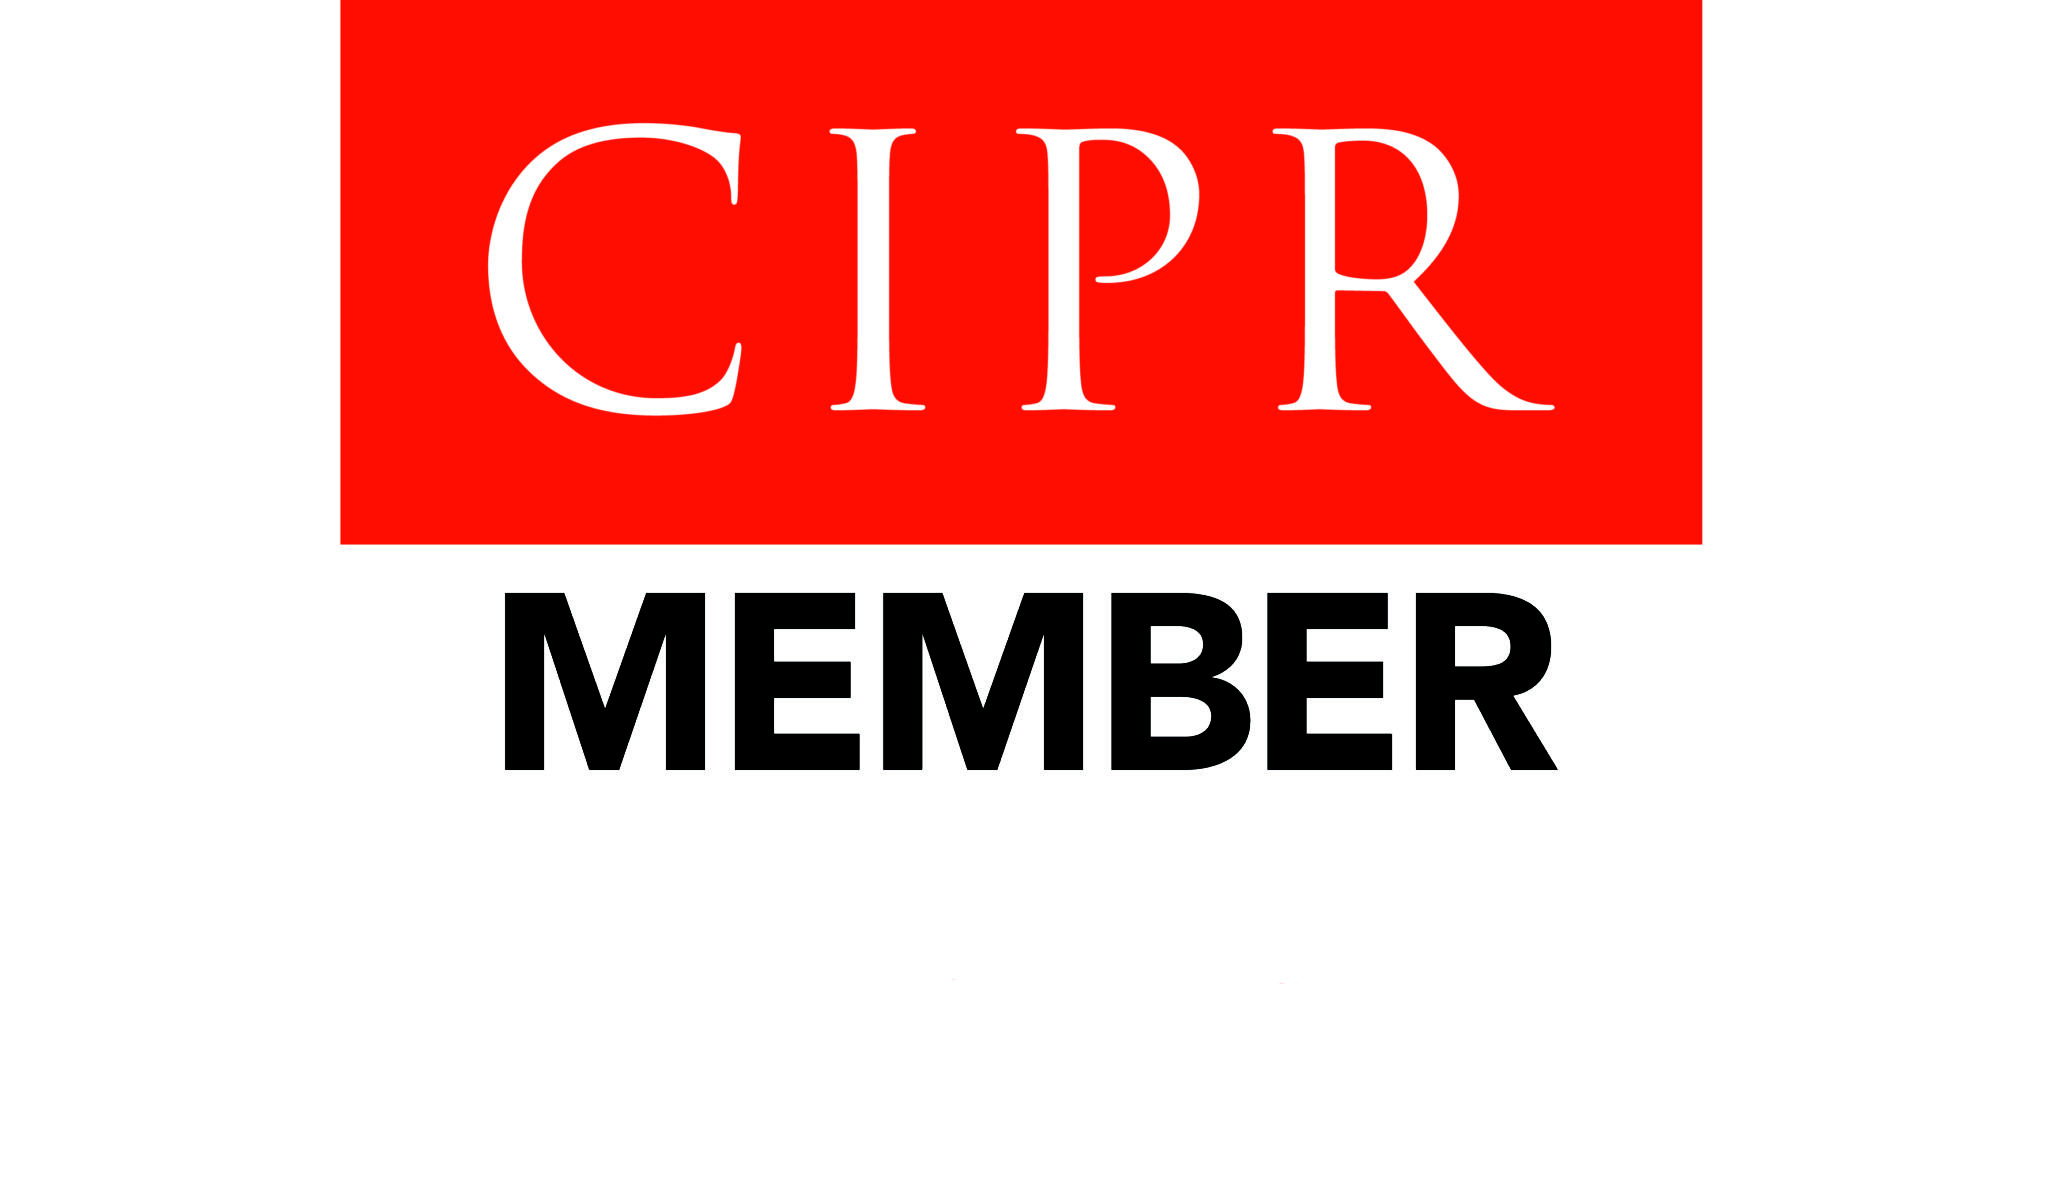 Chartered Institute of Public Relations Member logo